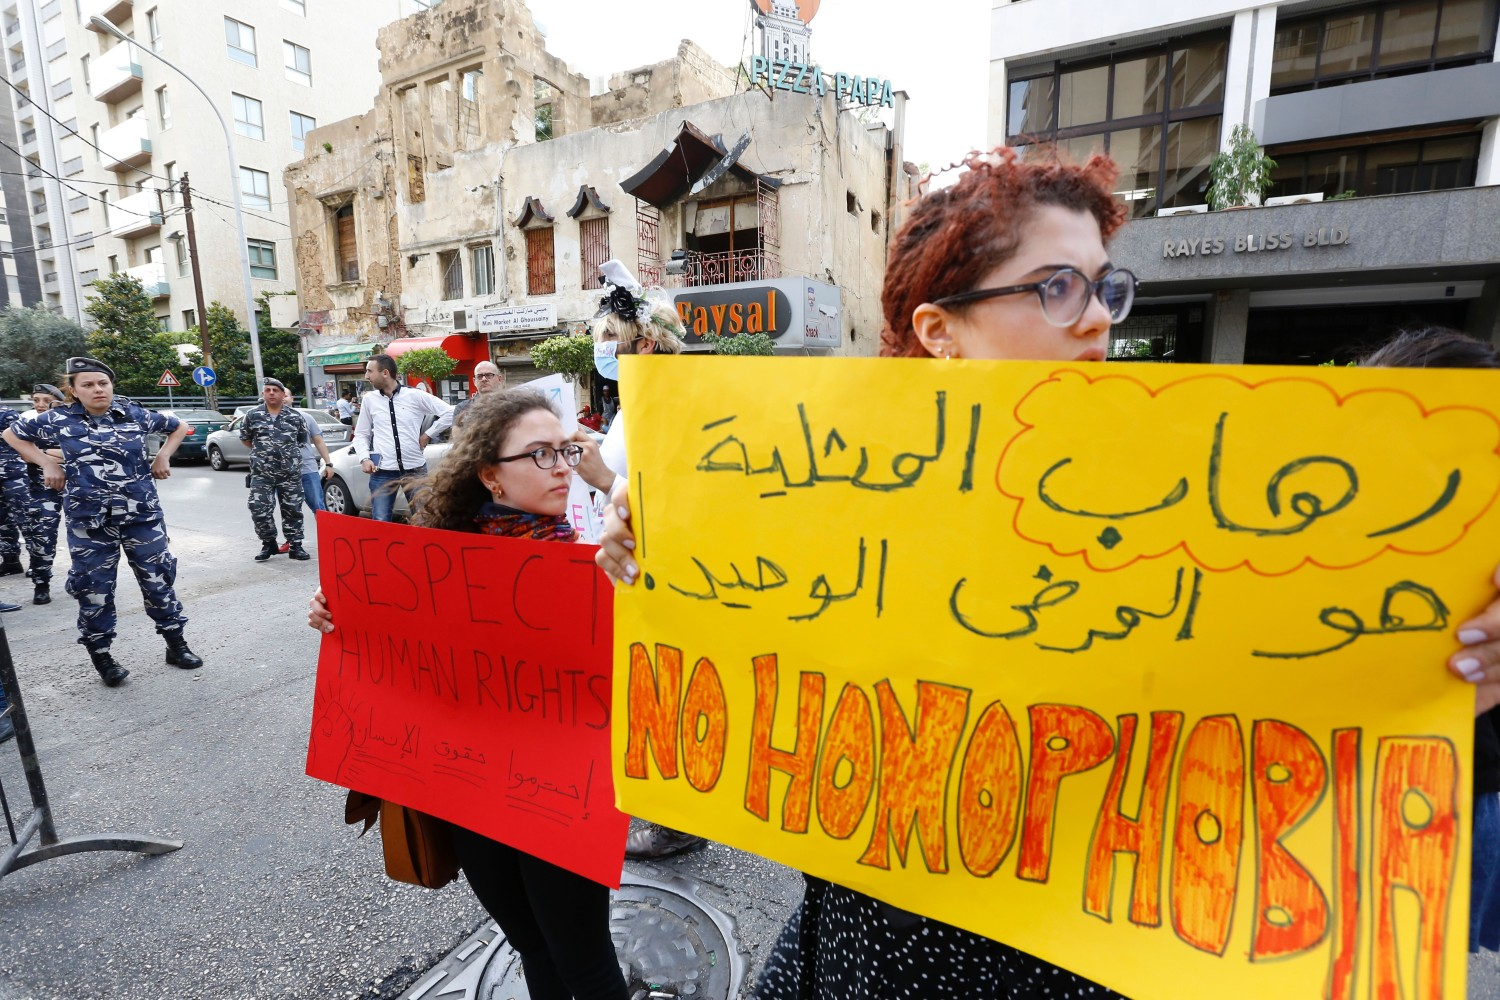 """Activists from of the lebanese LGBT community take part in a protest outside the Hbeish police station in Beirut on May 15, 2016, demanding the release of four transsexual women and calling for the abolishment of article 534 of the Lebanese Penal code, which prohibits having sexual relations that """"contradict the laws of nature"""". / AFP / European Commission / ANWAR AMRO (Photo credit should read ANWAR AMRO/AFP/Getty Images)"""